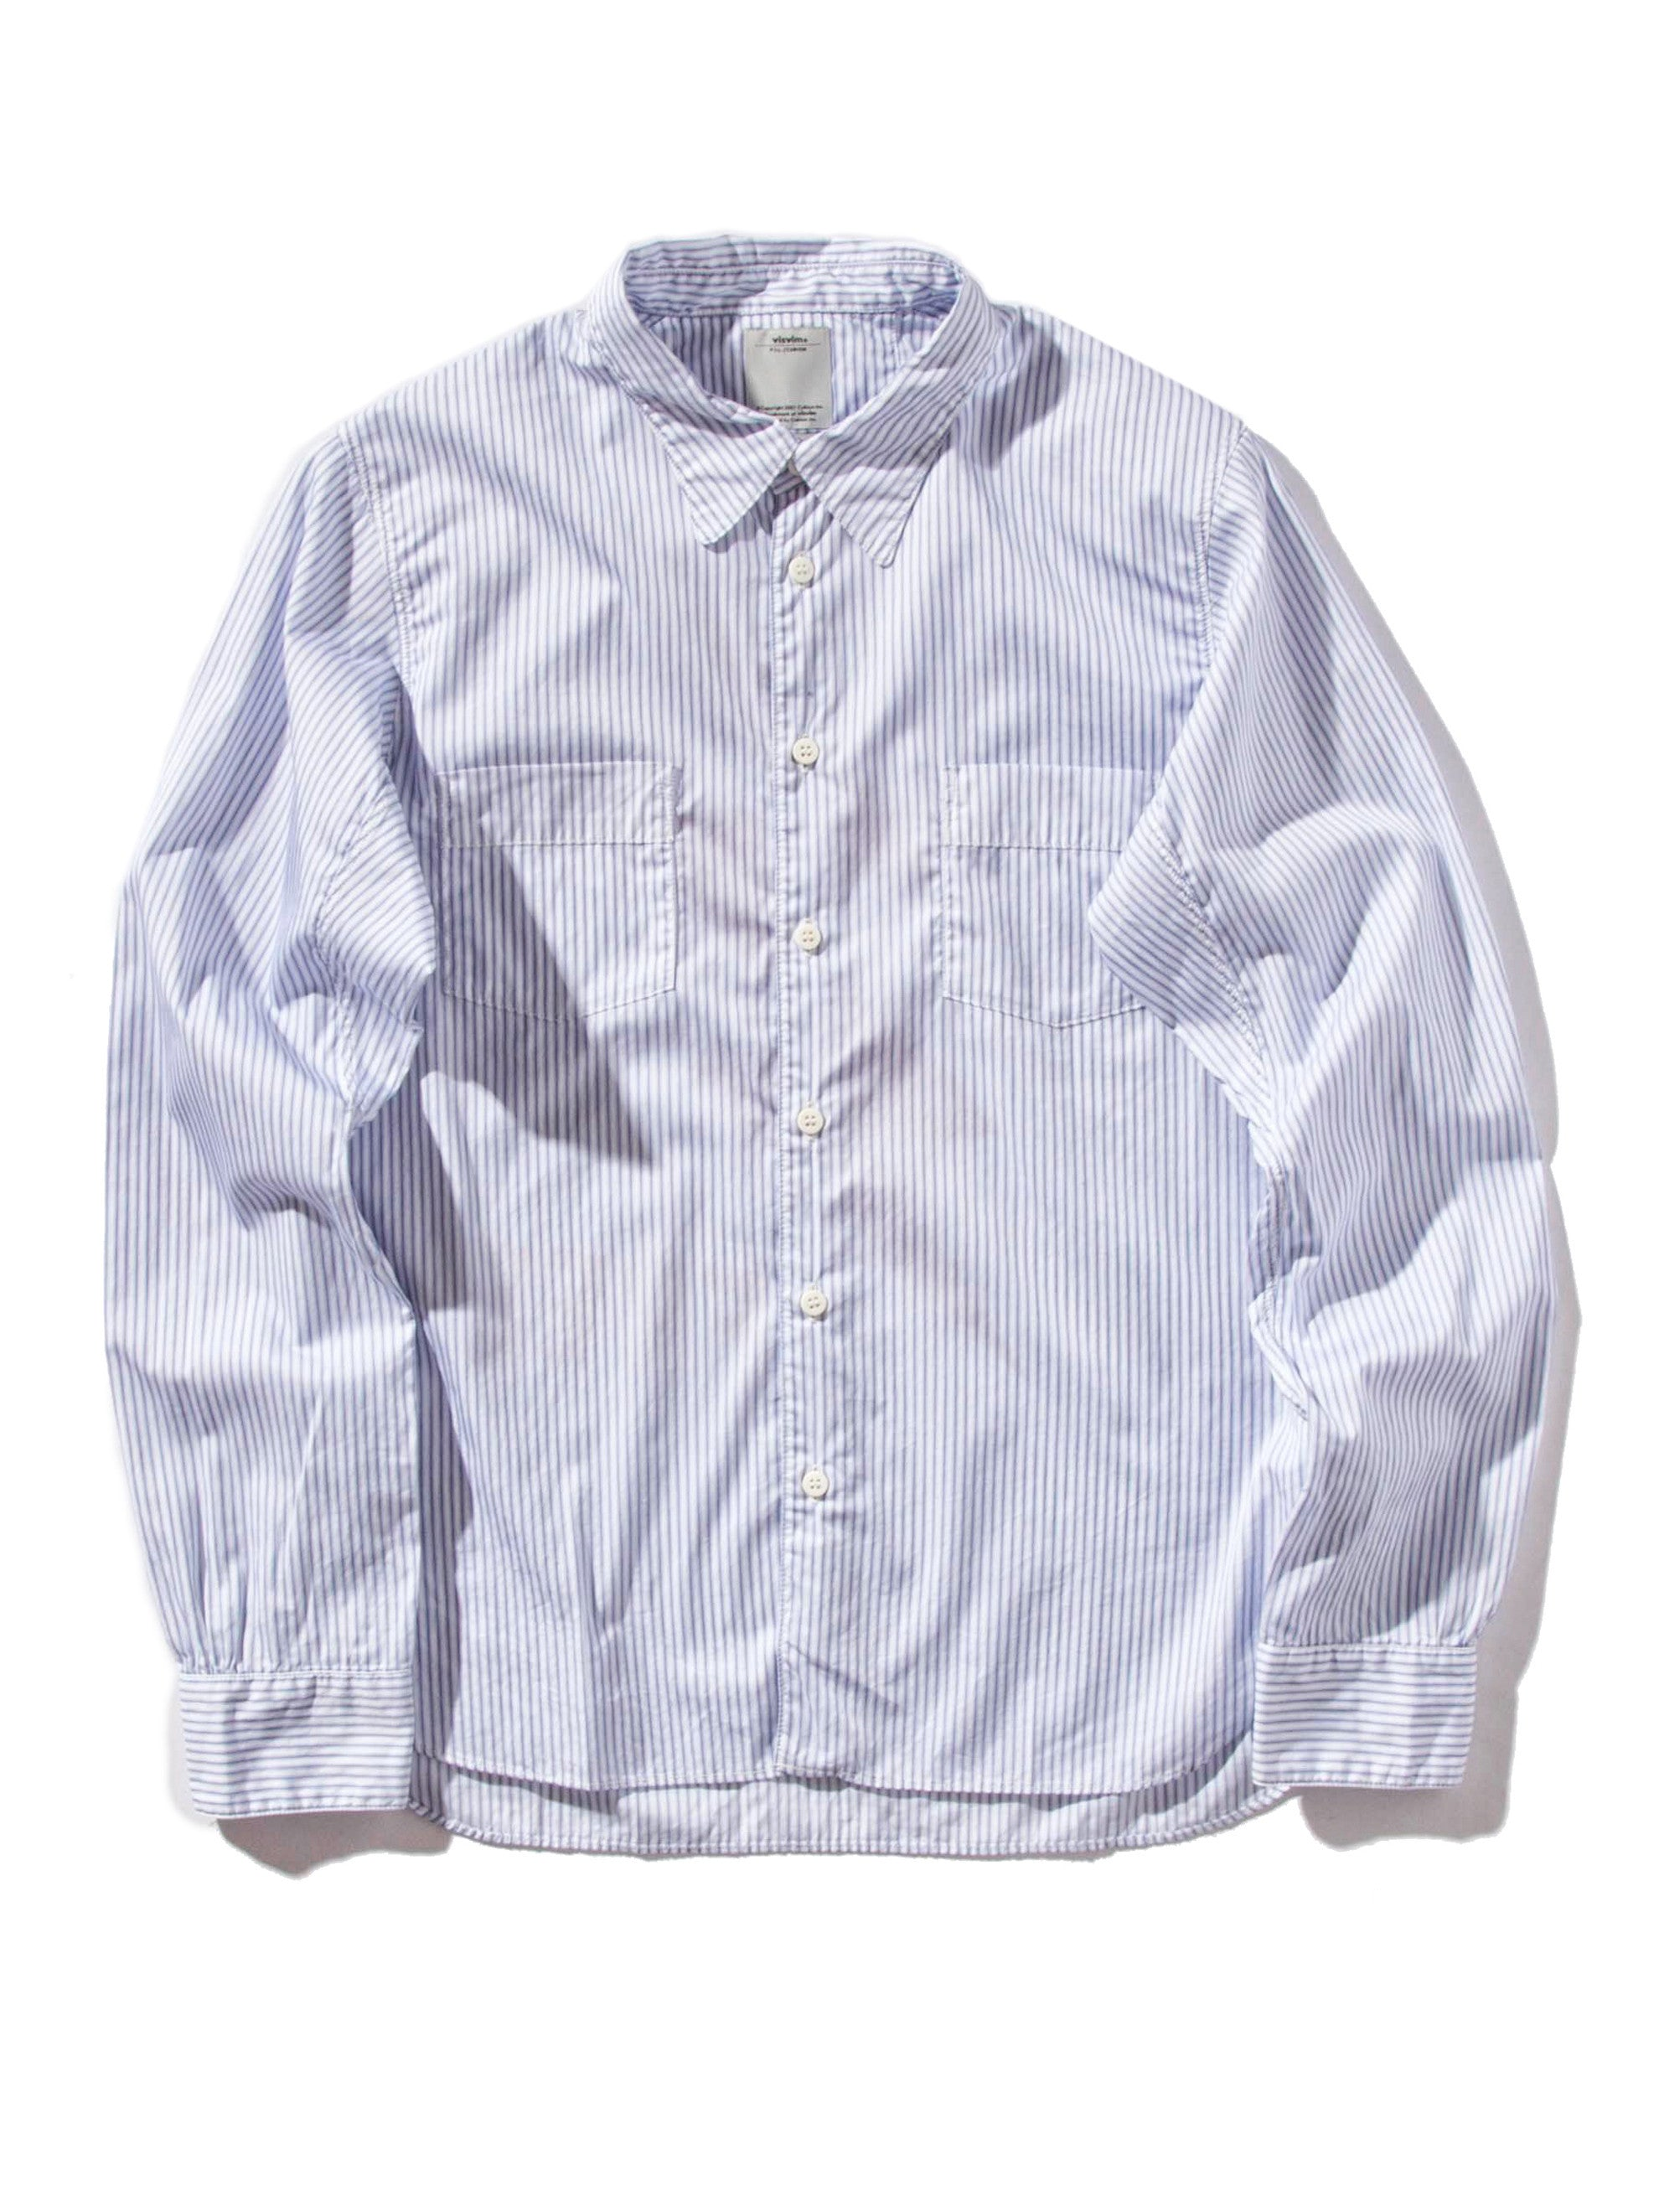 Navy Gekko Dress Shirt 7